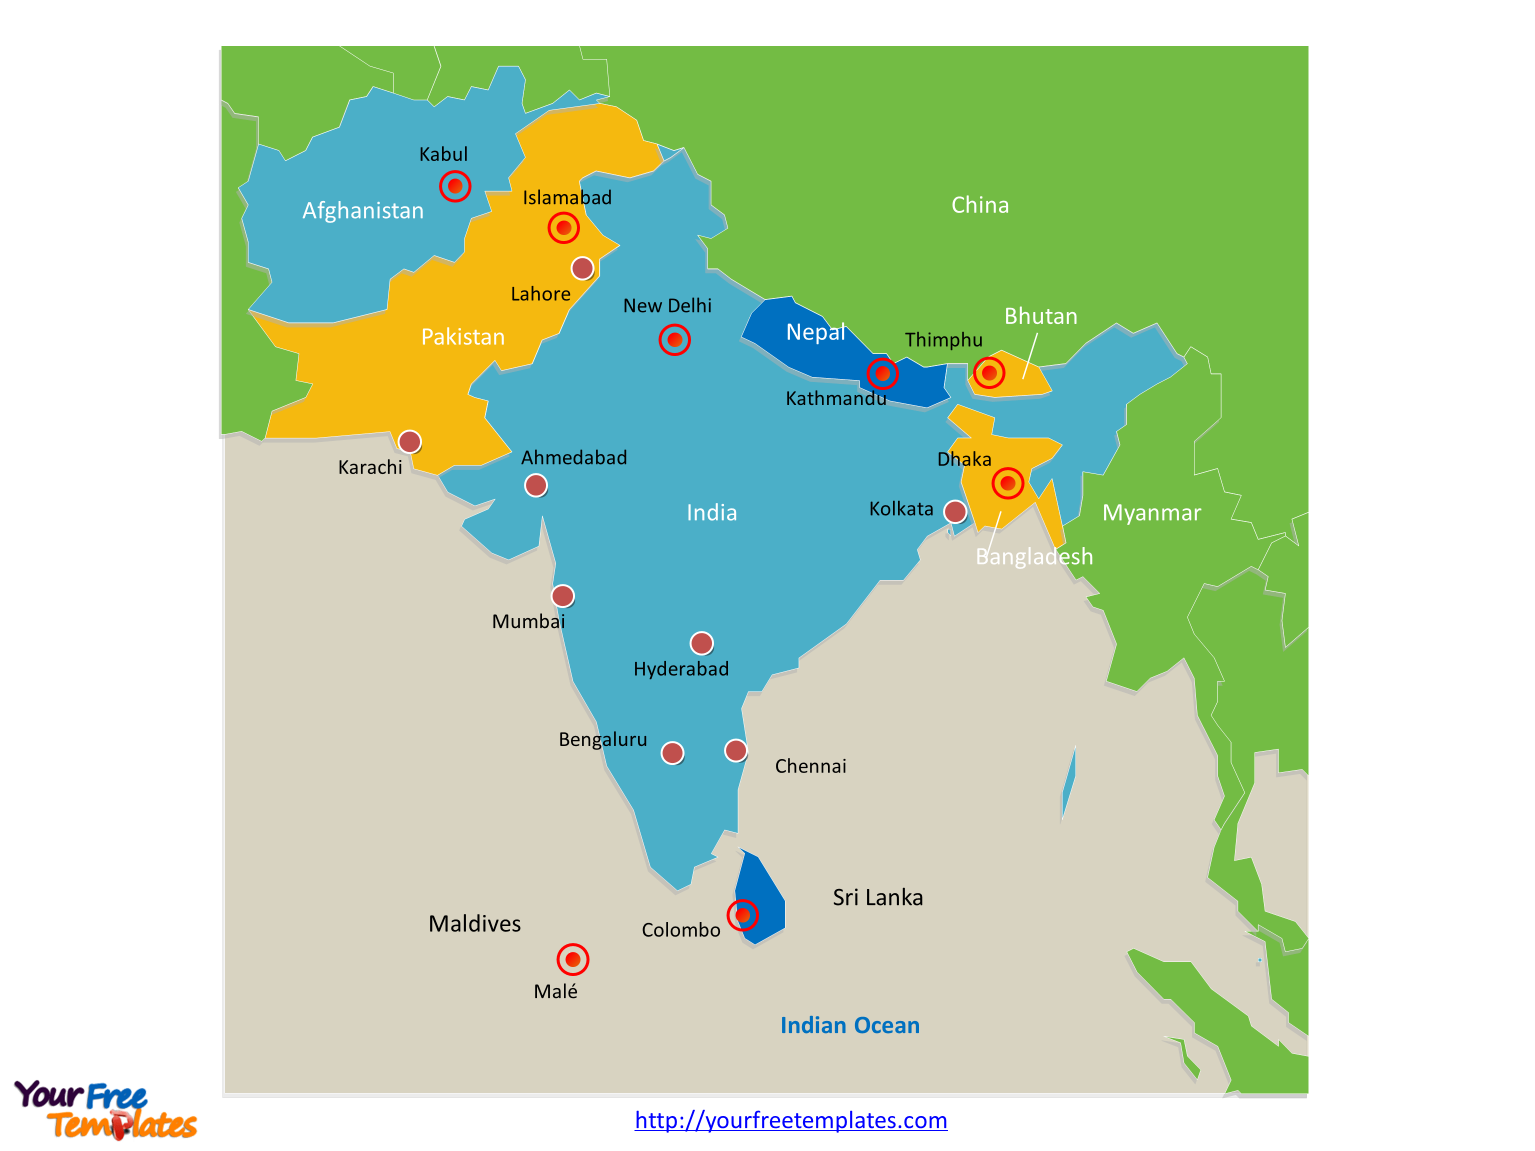 Map of South Asia with individual countries and major Countries labeled on the South Asia map free templates